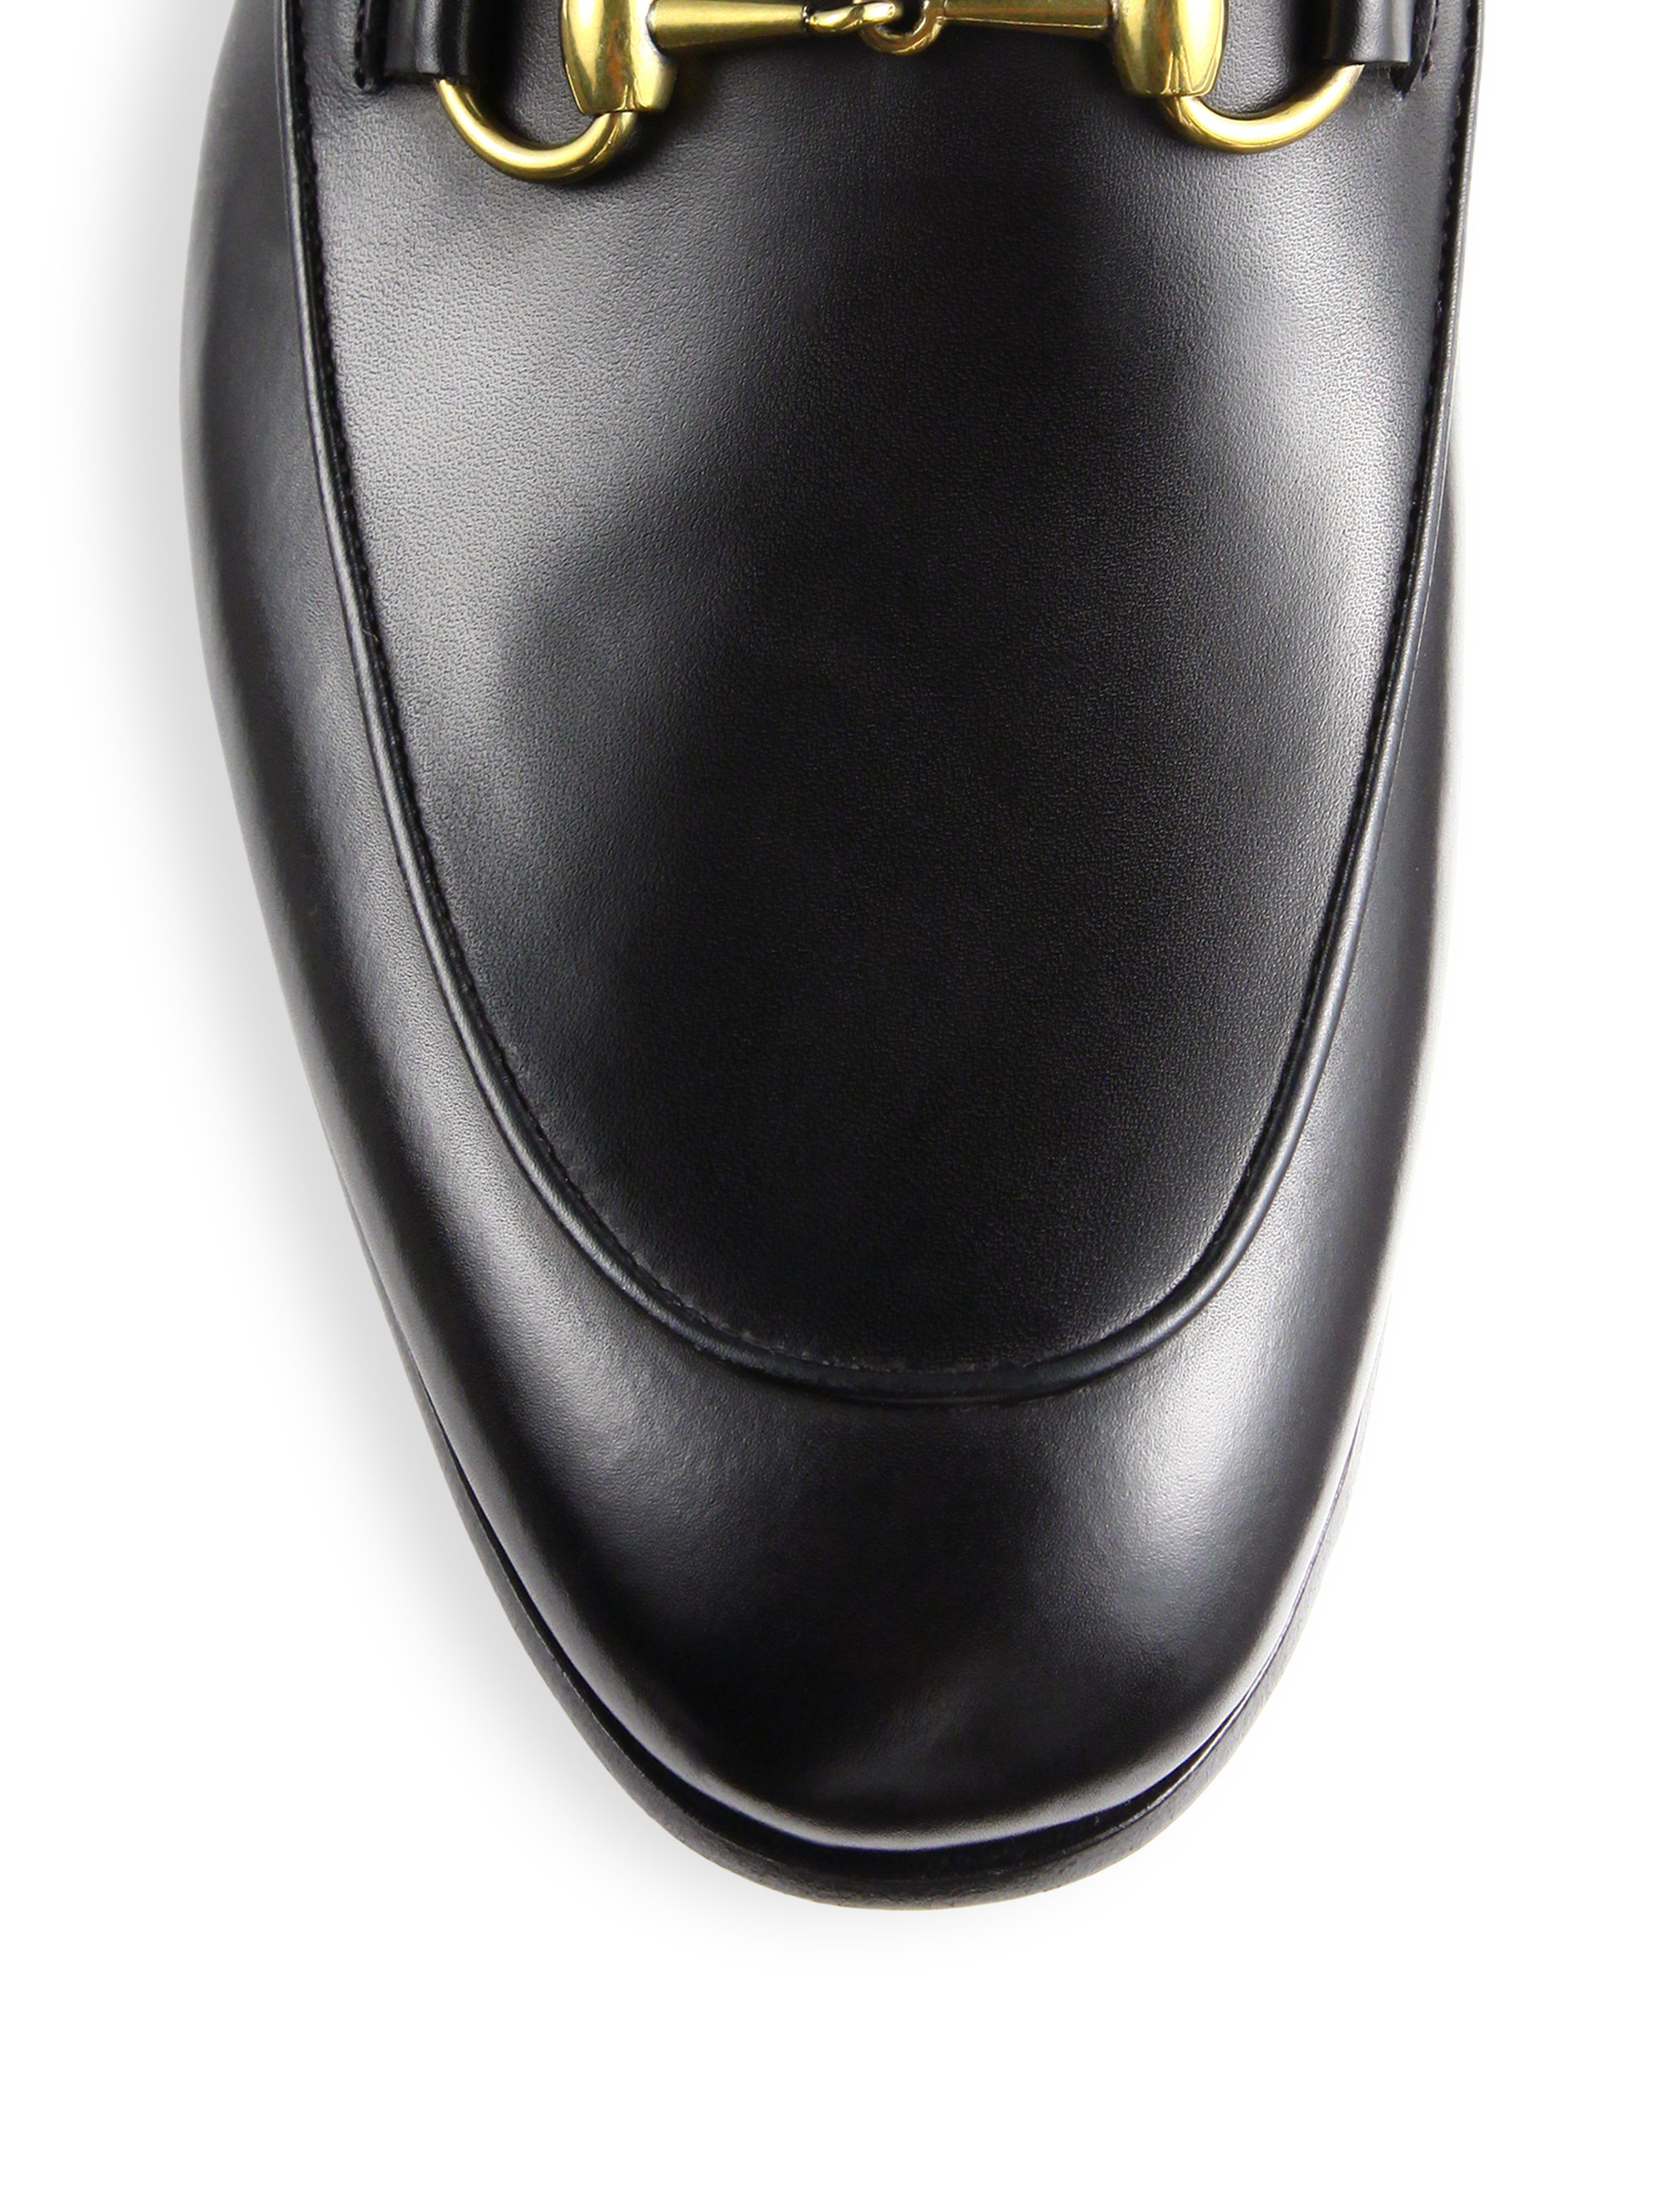 45cc83ca263e Lyst - Gucci Jordaan Leather Horsebit Loafer in Black for Men